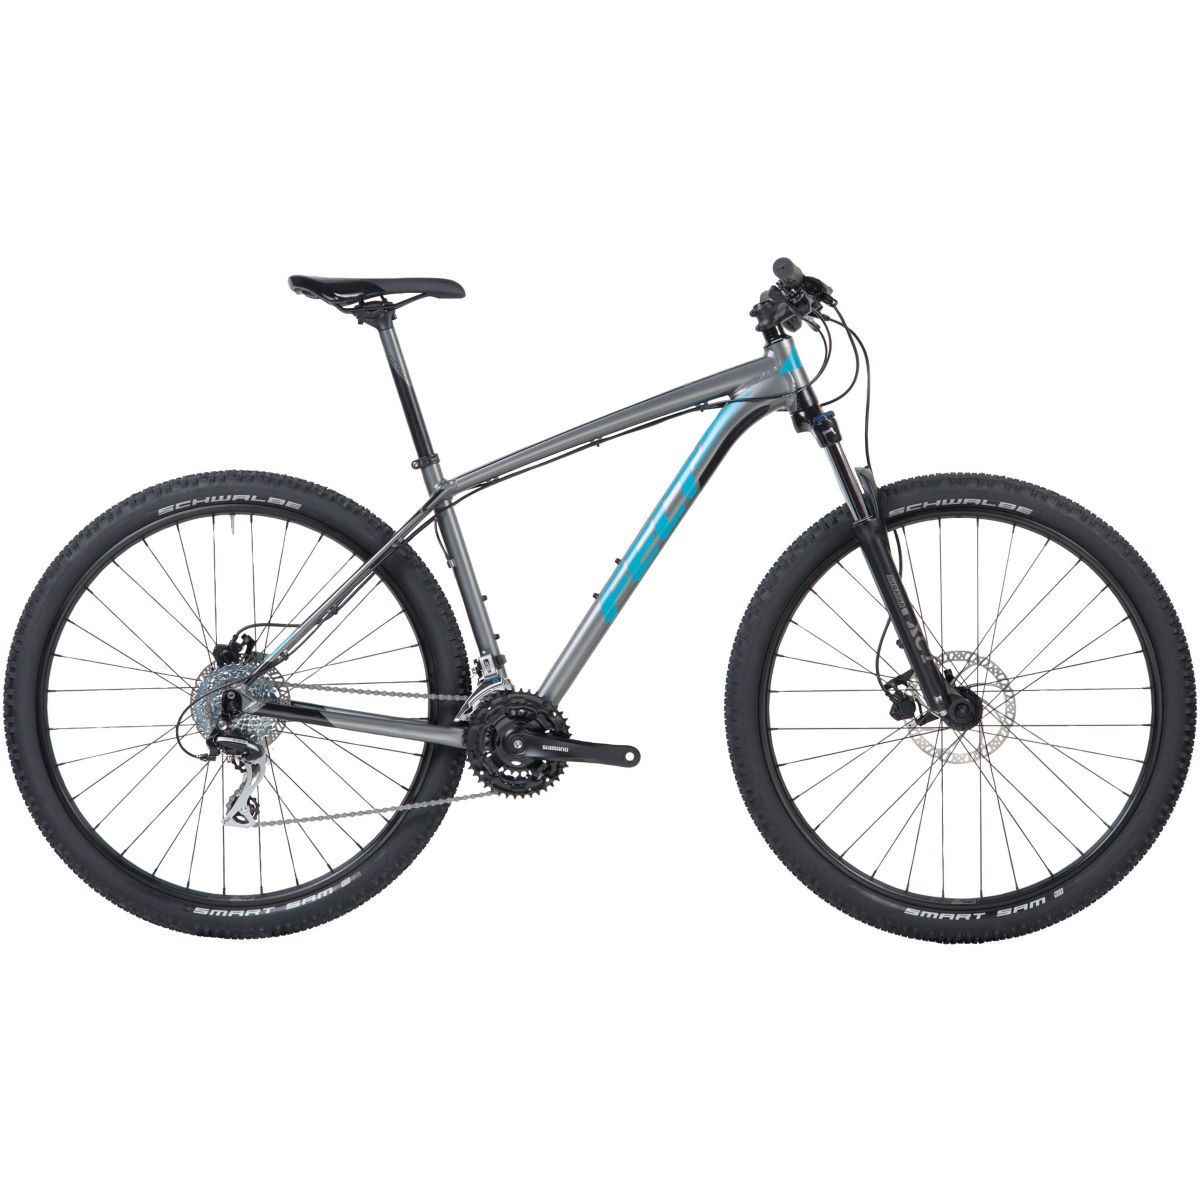 VTT semi-rigide Felt Dispatch 9/80 XC (2018) - 20'' Stock Bike